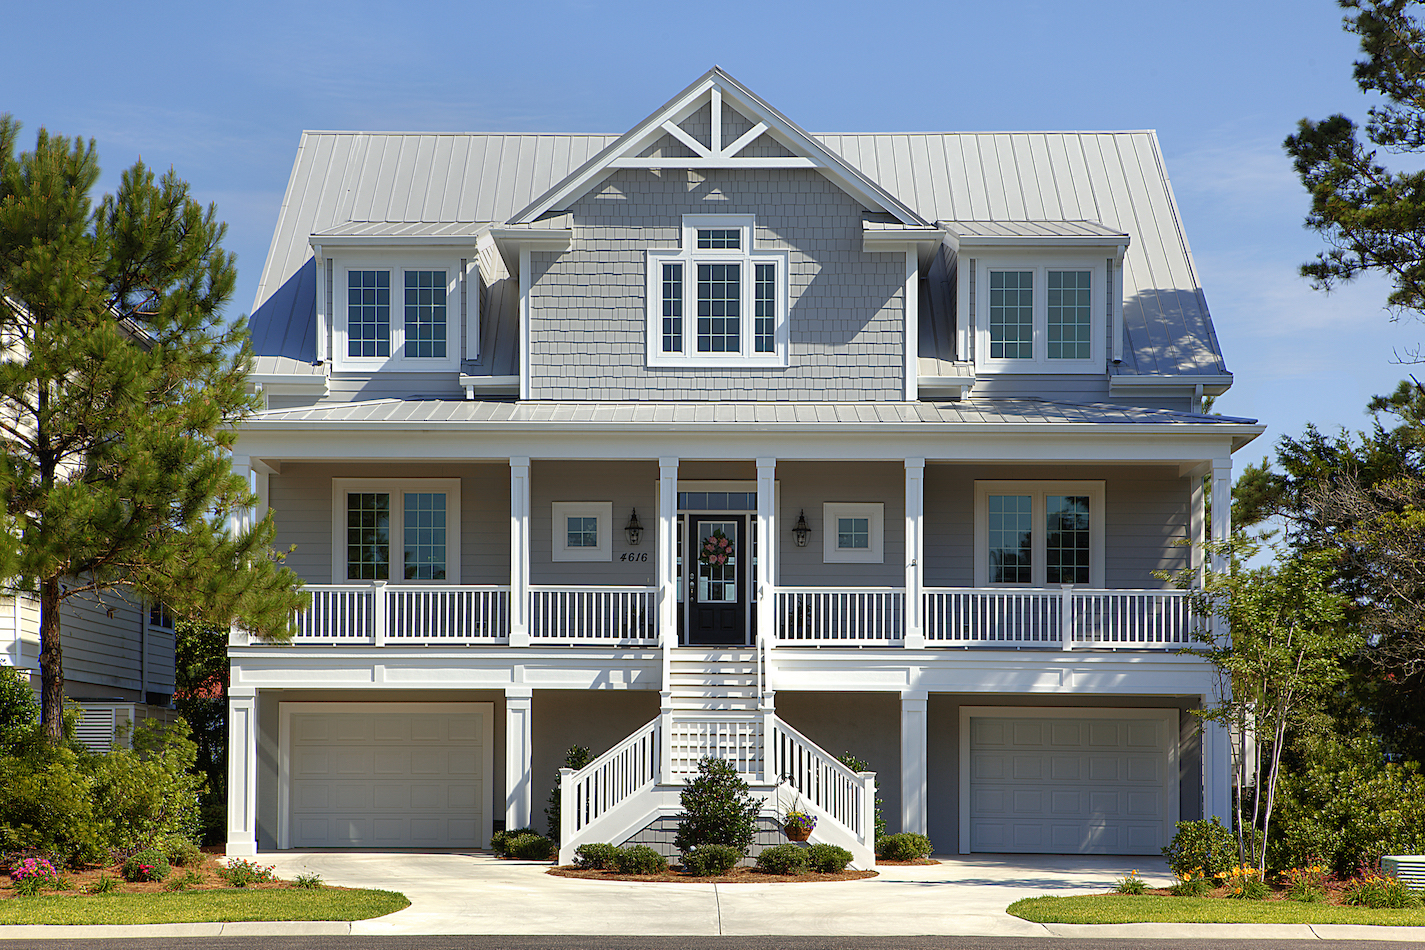 https://babbcustomhomes.com/tour-our-homes/nggallery/custom-homes/Tidewater-Plantation-%E2%80%93-South-Island-Drive